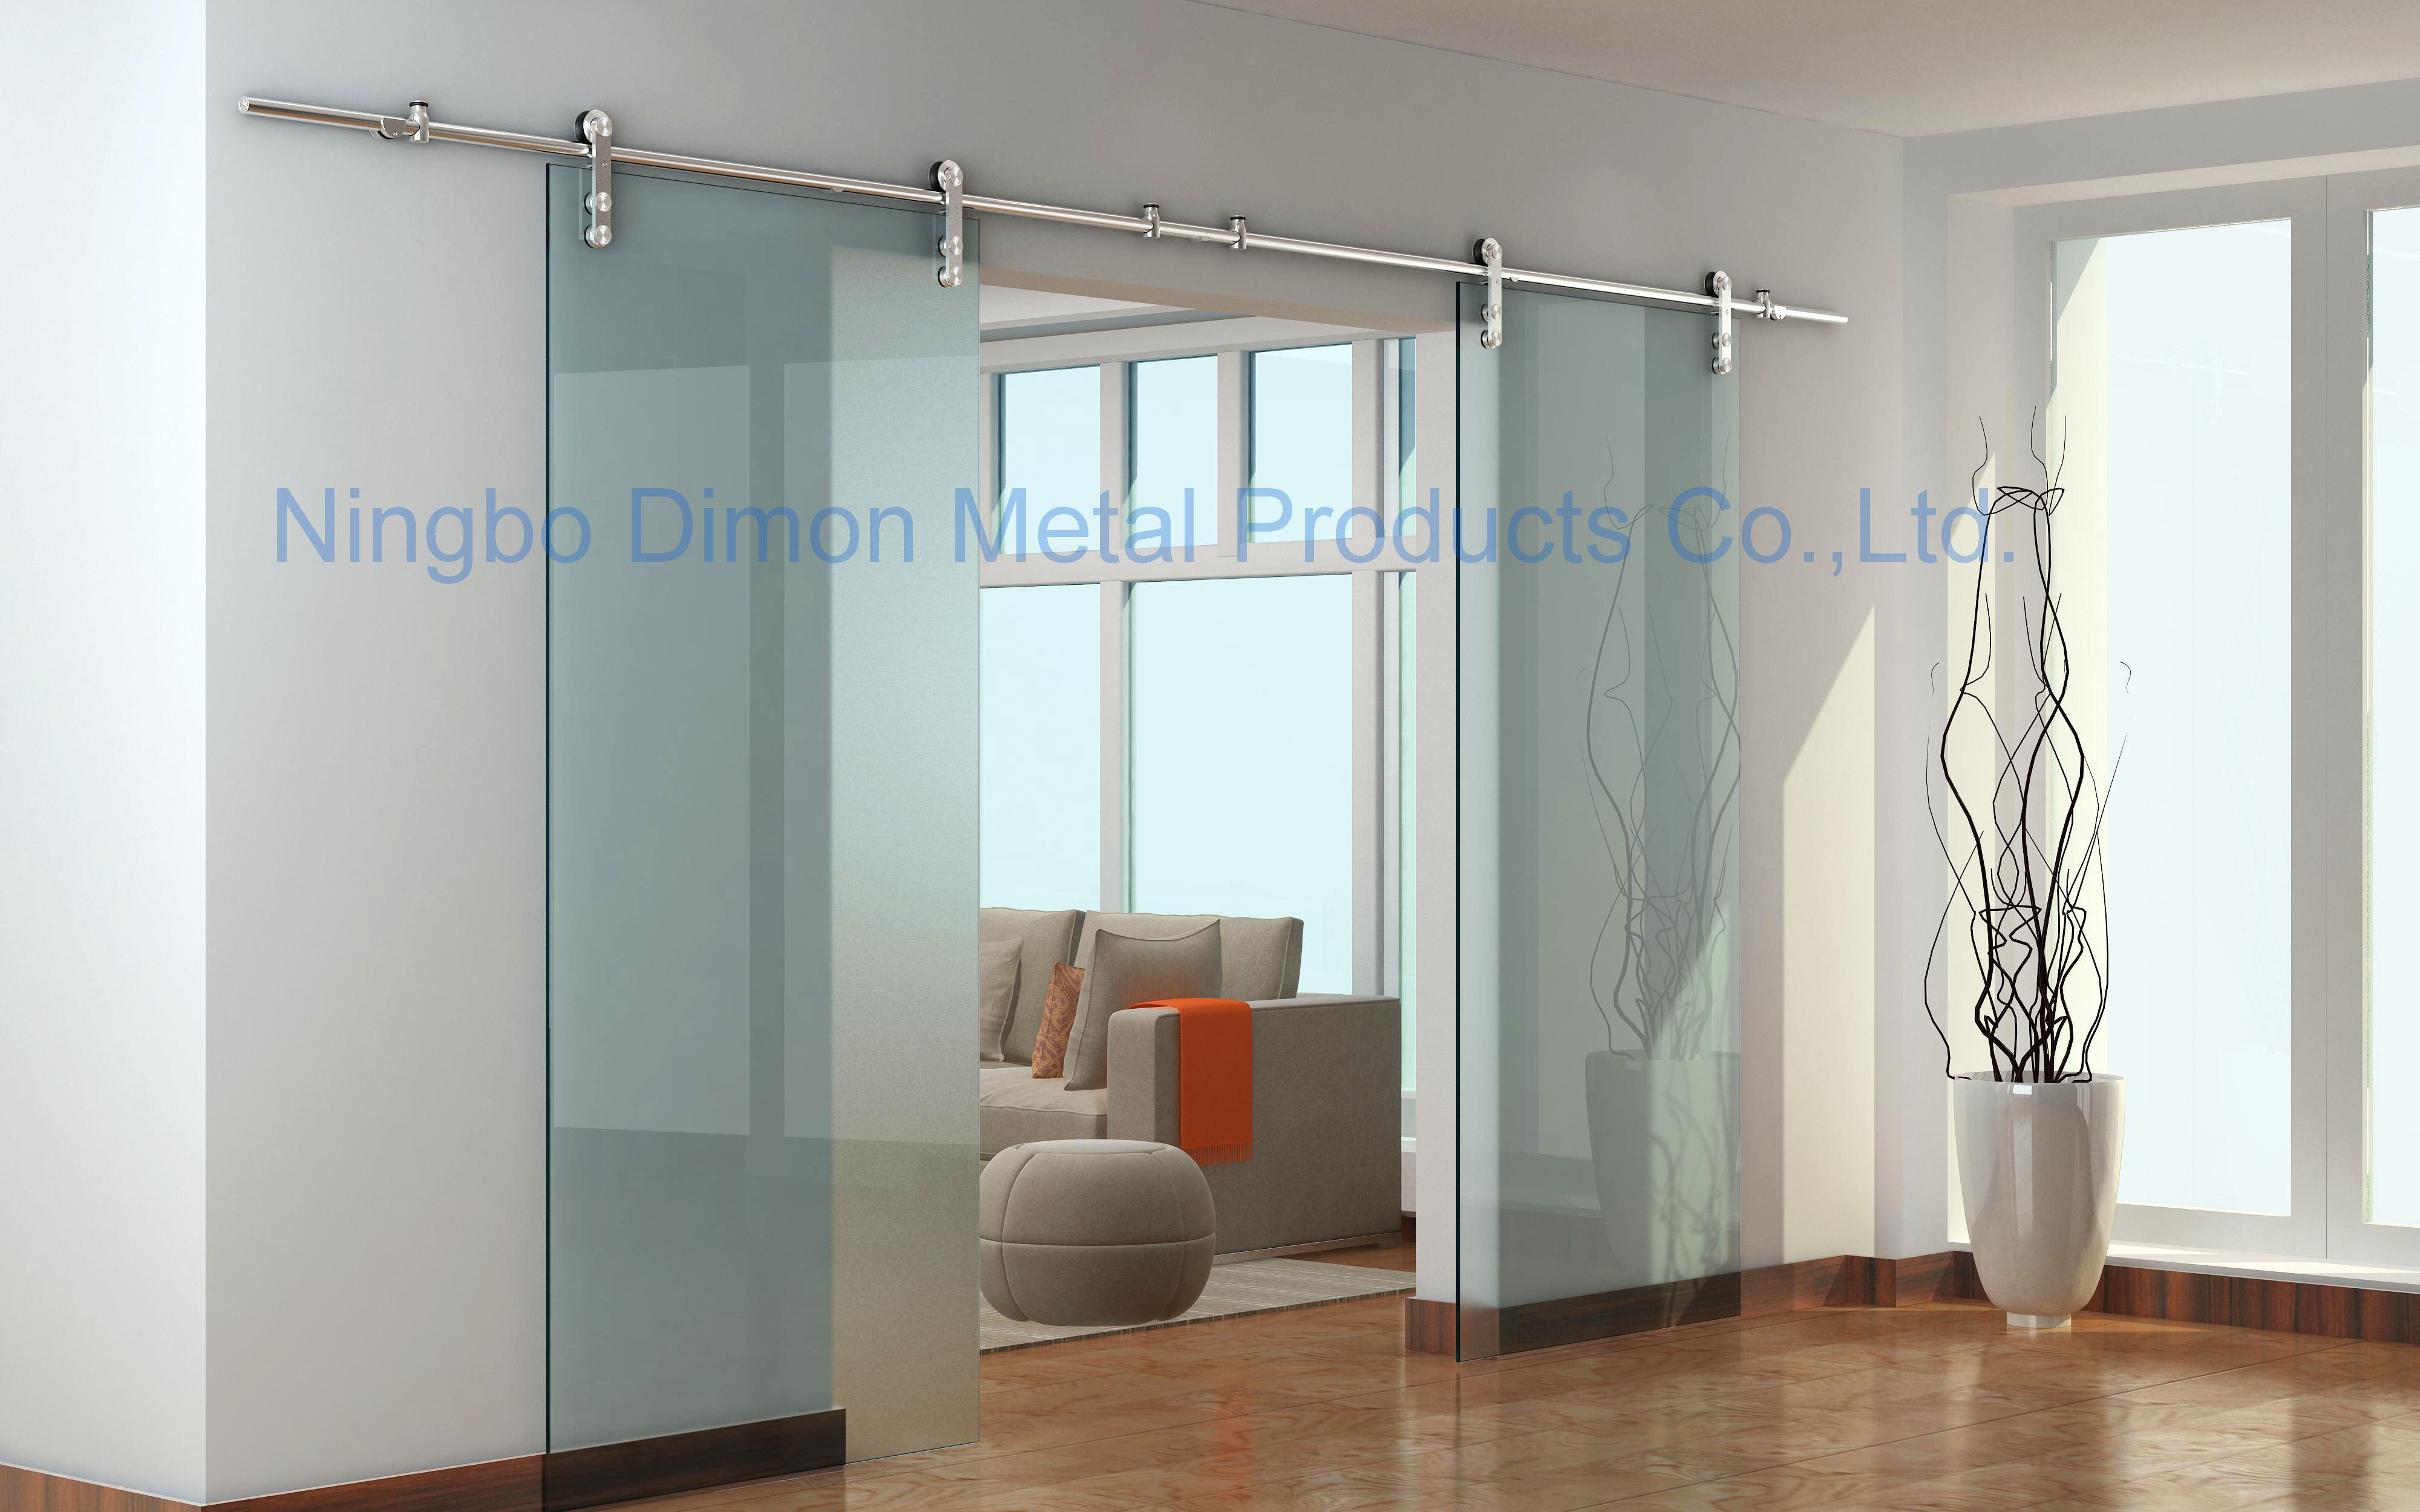 Dimon Stainless steel 304 door hardware glass sliding door hardware sliding door hardware DM-SDG 7002 without sliding track